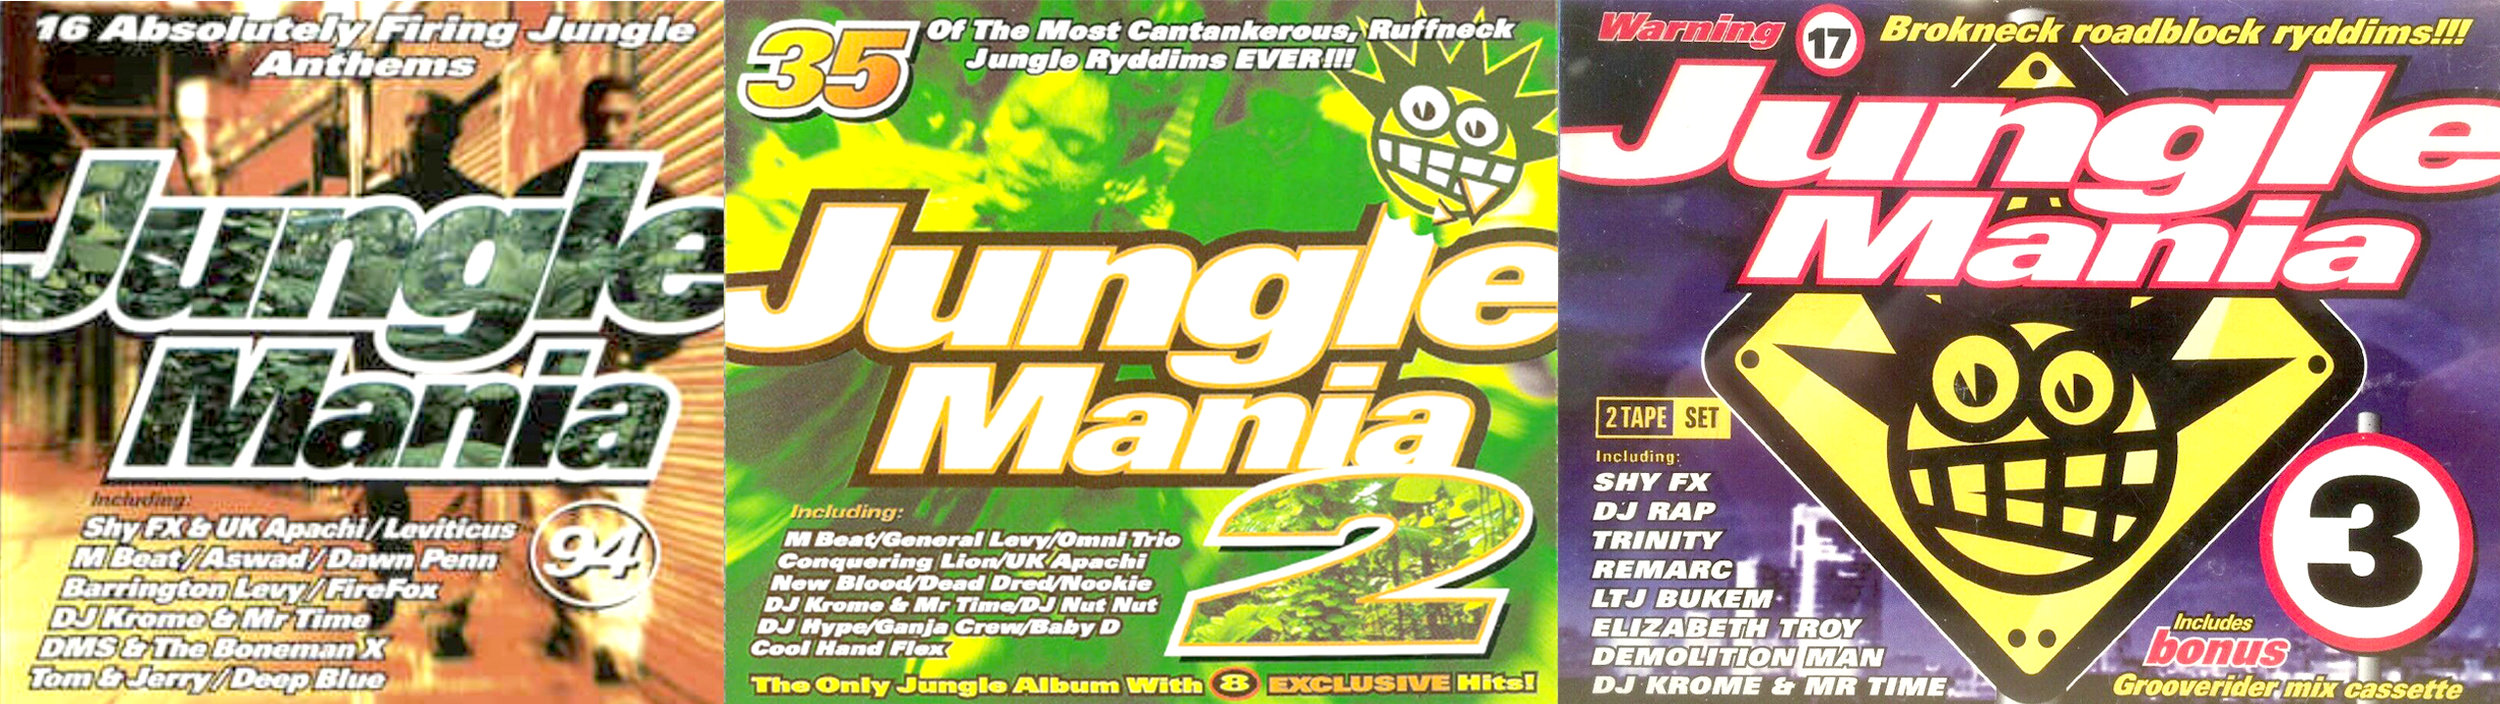 JungleMania-collage-1.jpg